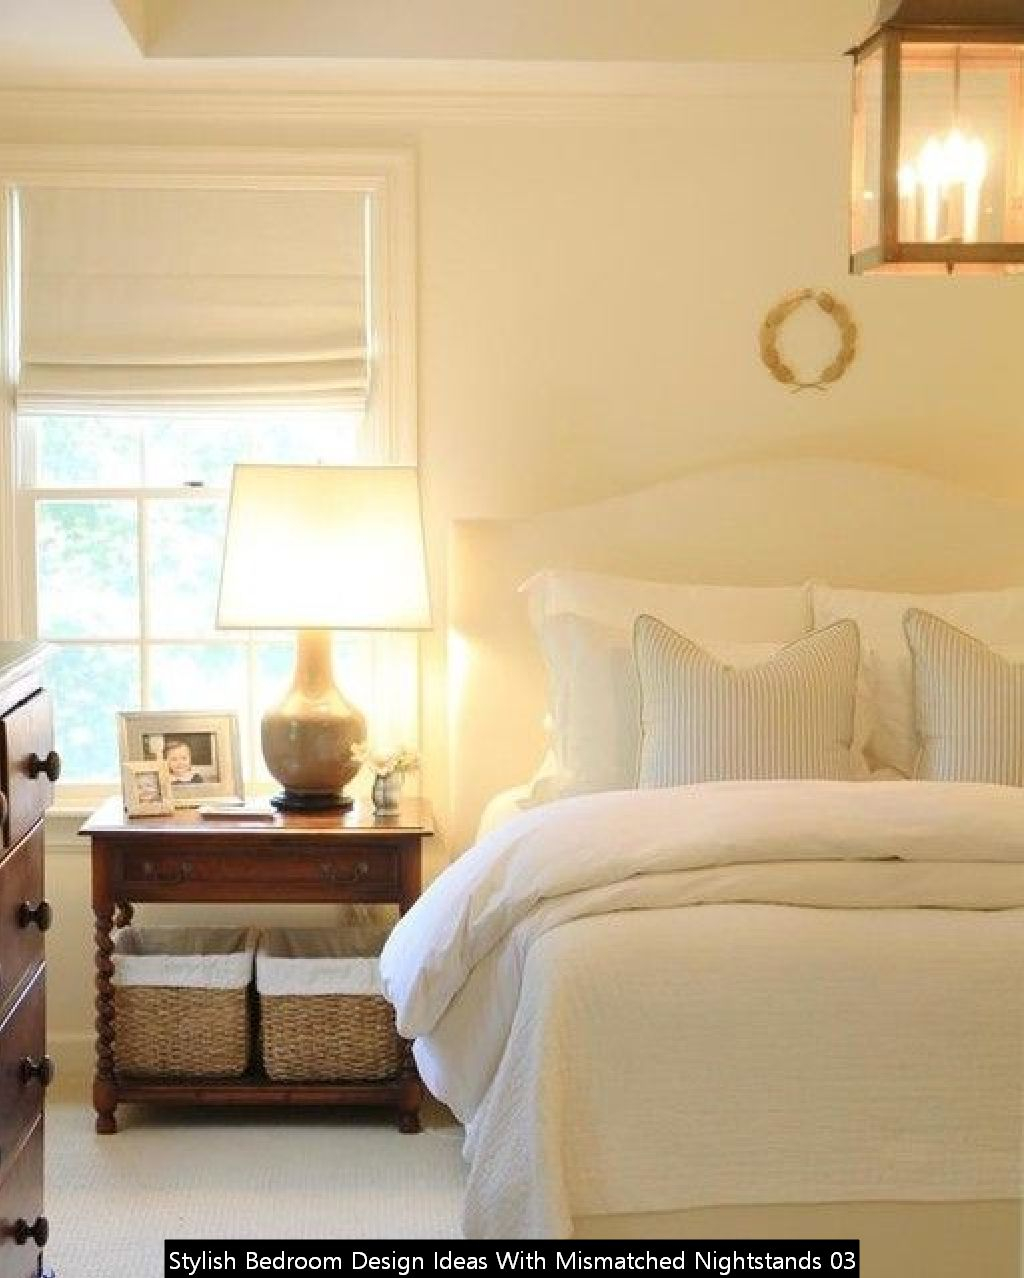 Stylish Bedroom Design Ideas With Mismatched Nightstands 03